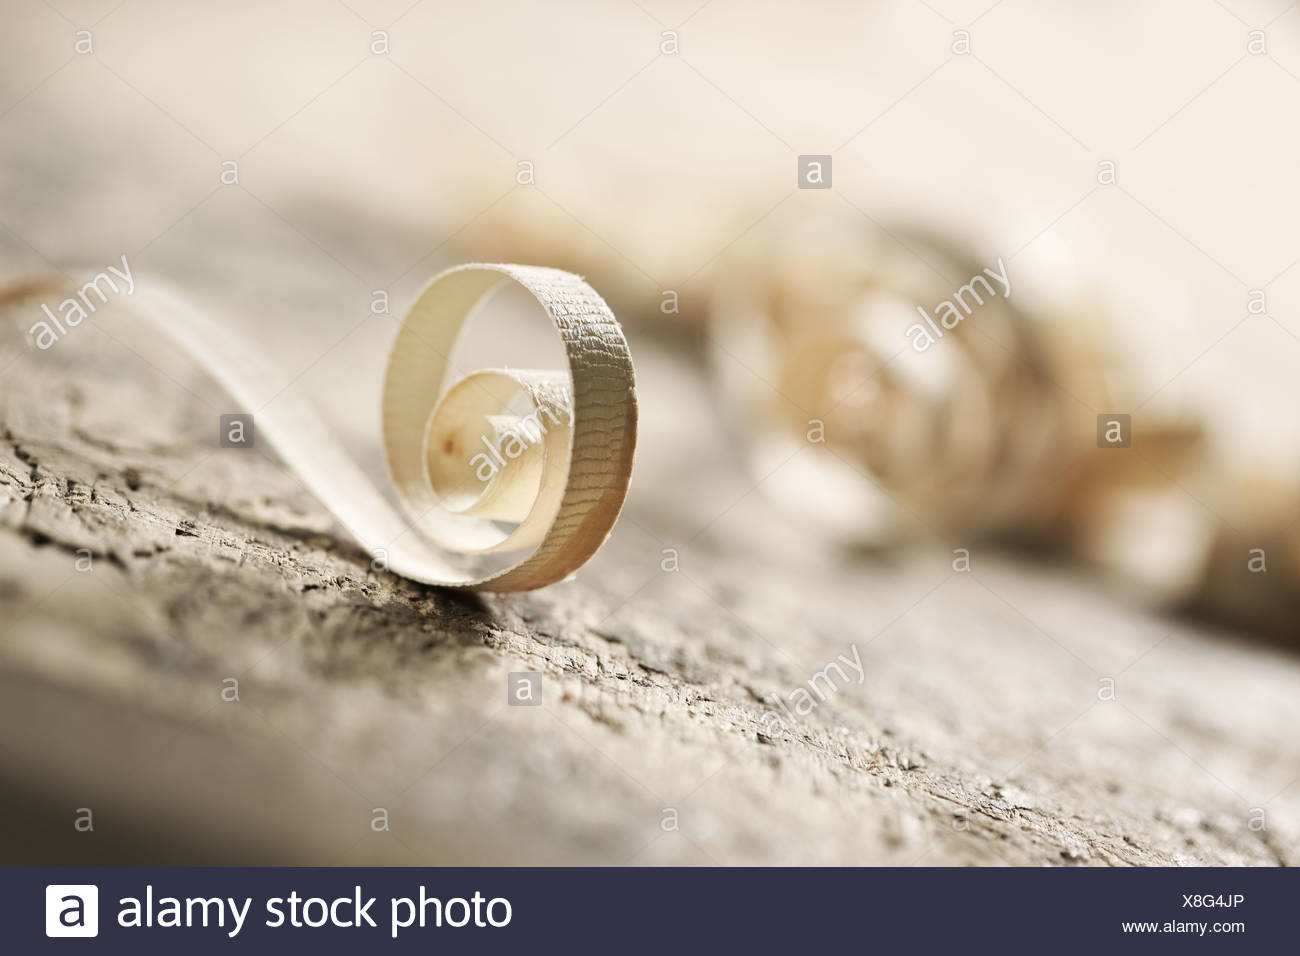 wood shavings with shallow depth of field - Stock Image